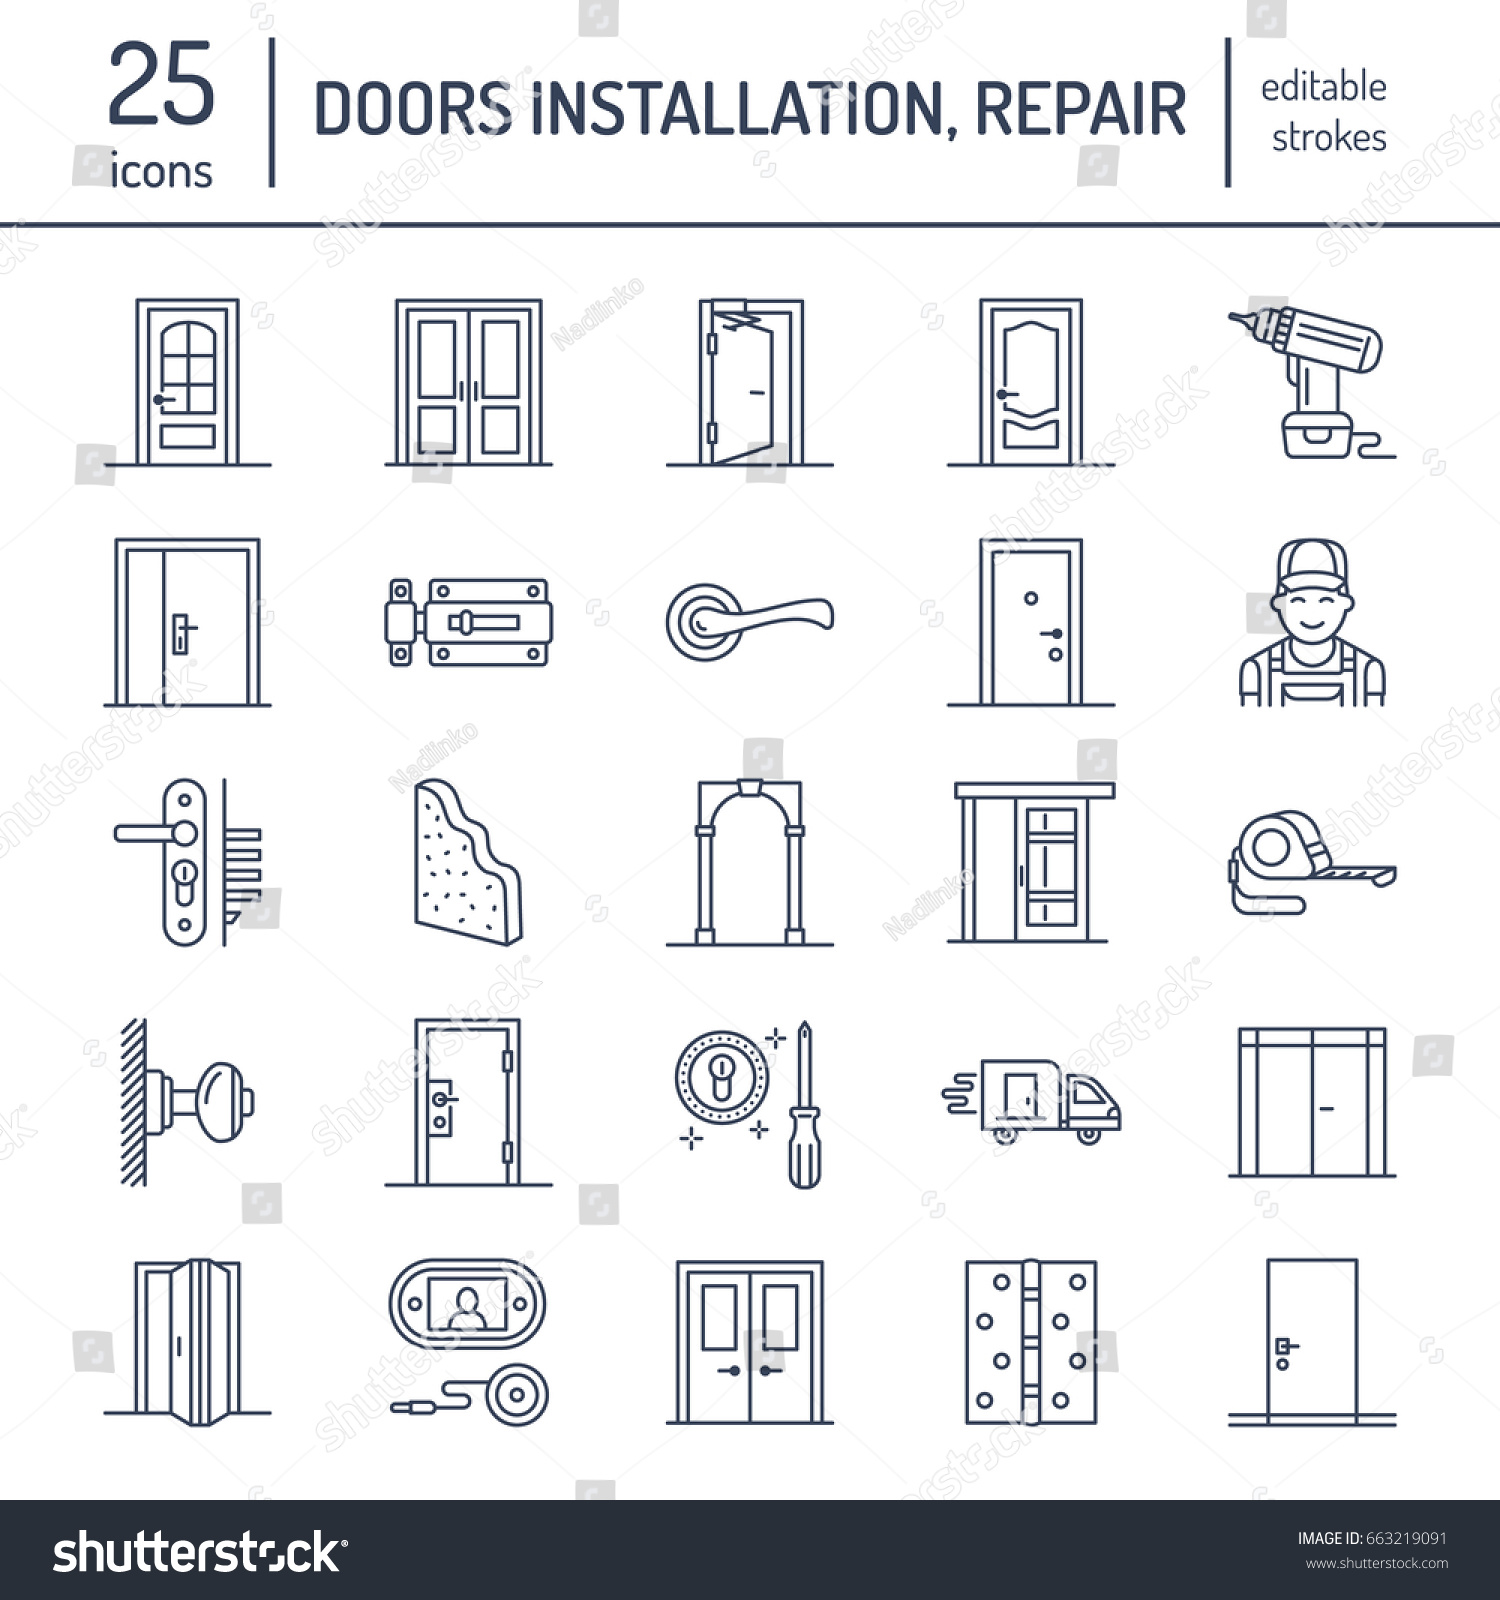 Doors installation repair line icons handle stock vector 663219091 shutterstock for Interior doors installation services